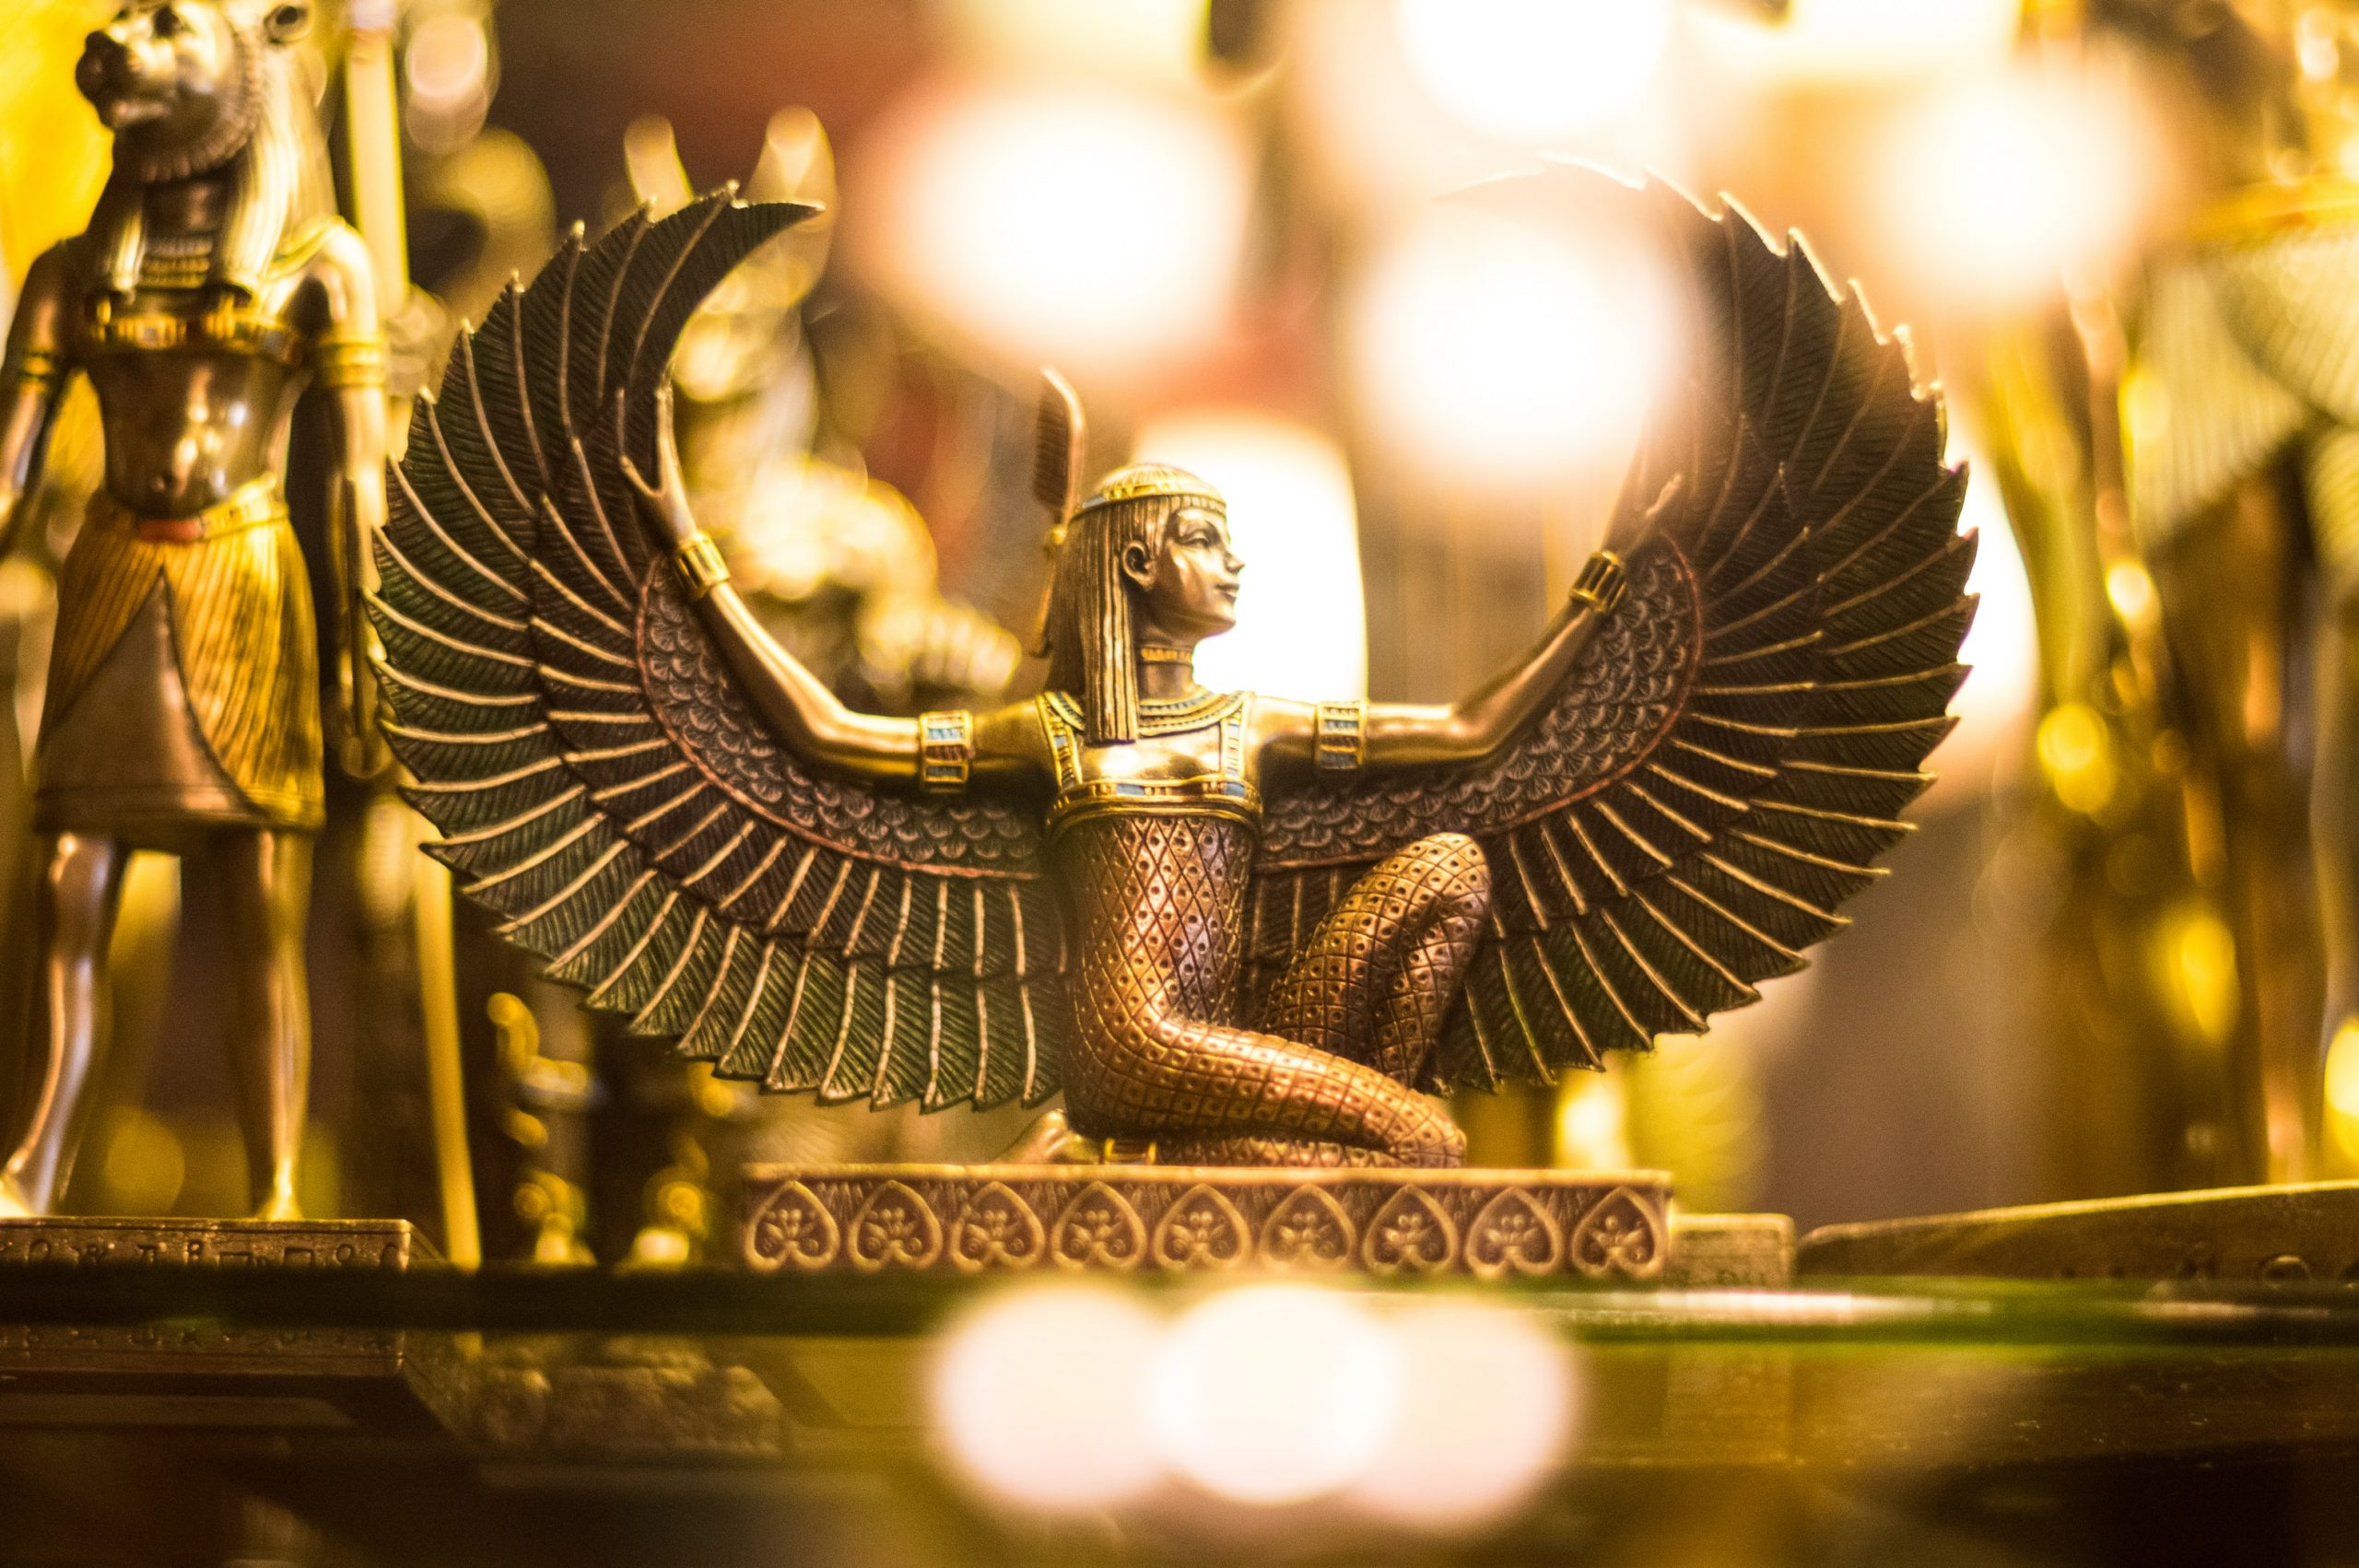 egyptian-statue-of-isis-divine-mother-kundalini